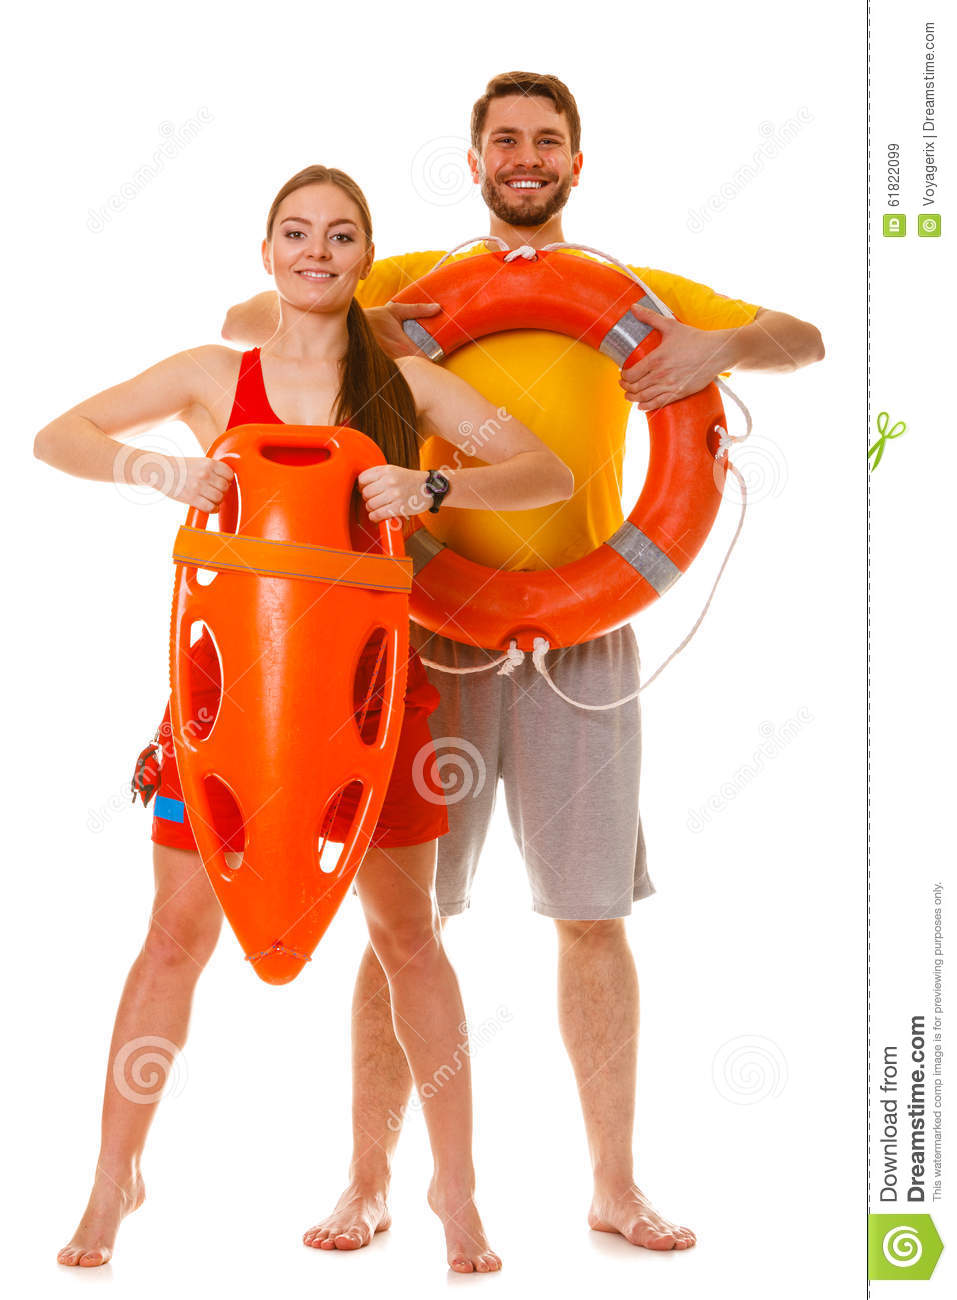 Lifeguards With Rescue And Ring Buoy Lifebuoy Stock Photo Image 61822099